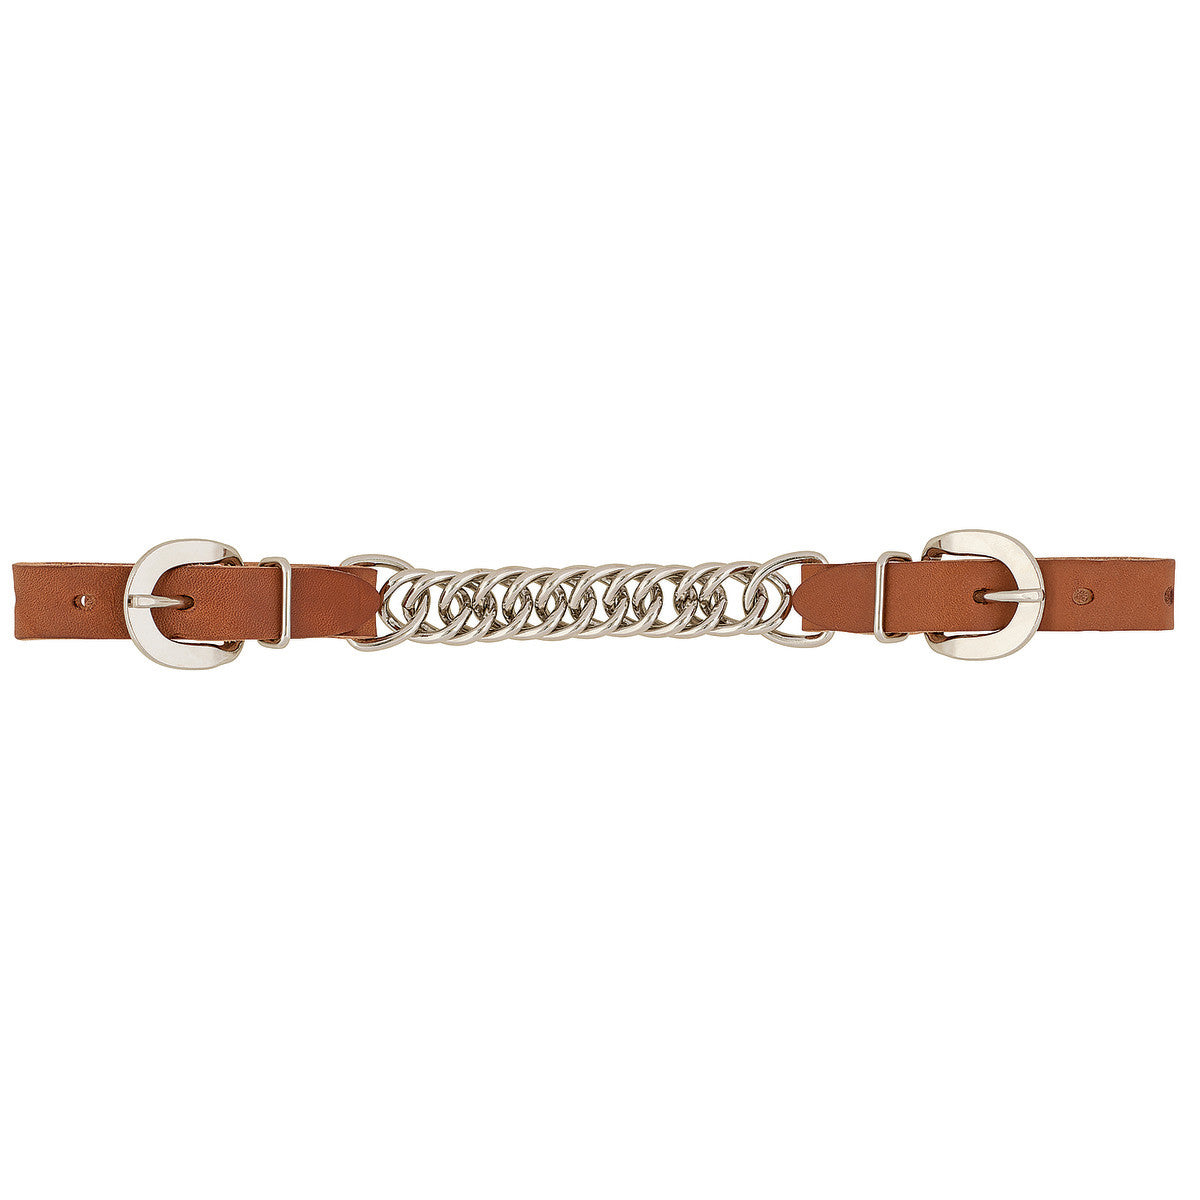 "Weaver Horizons 4.5"" Single Flat Link Chain Curb Strap - Golden Brown"